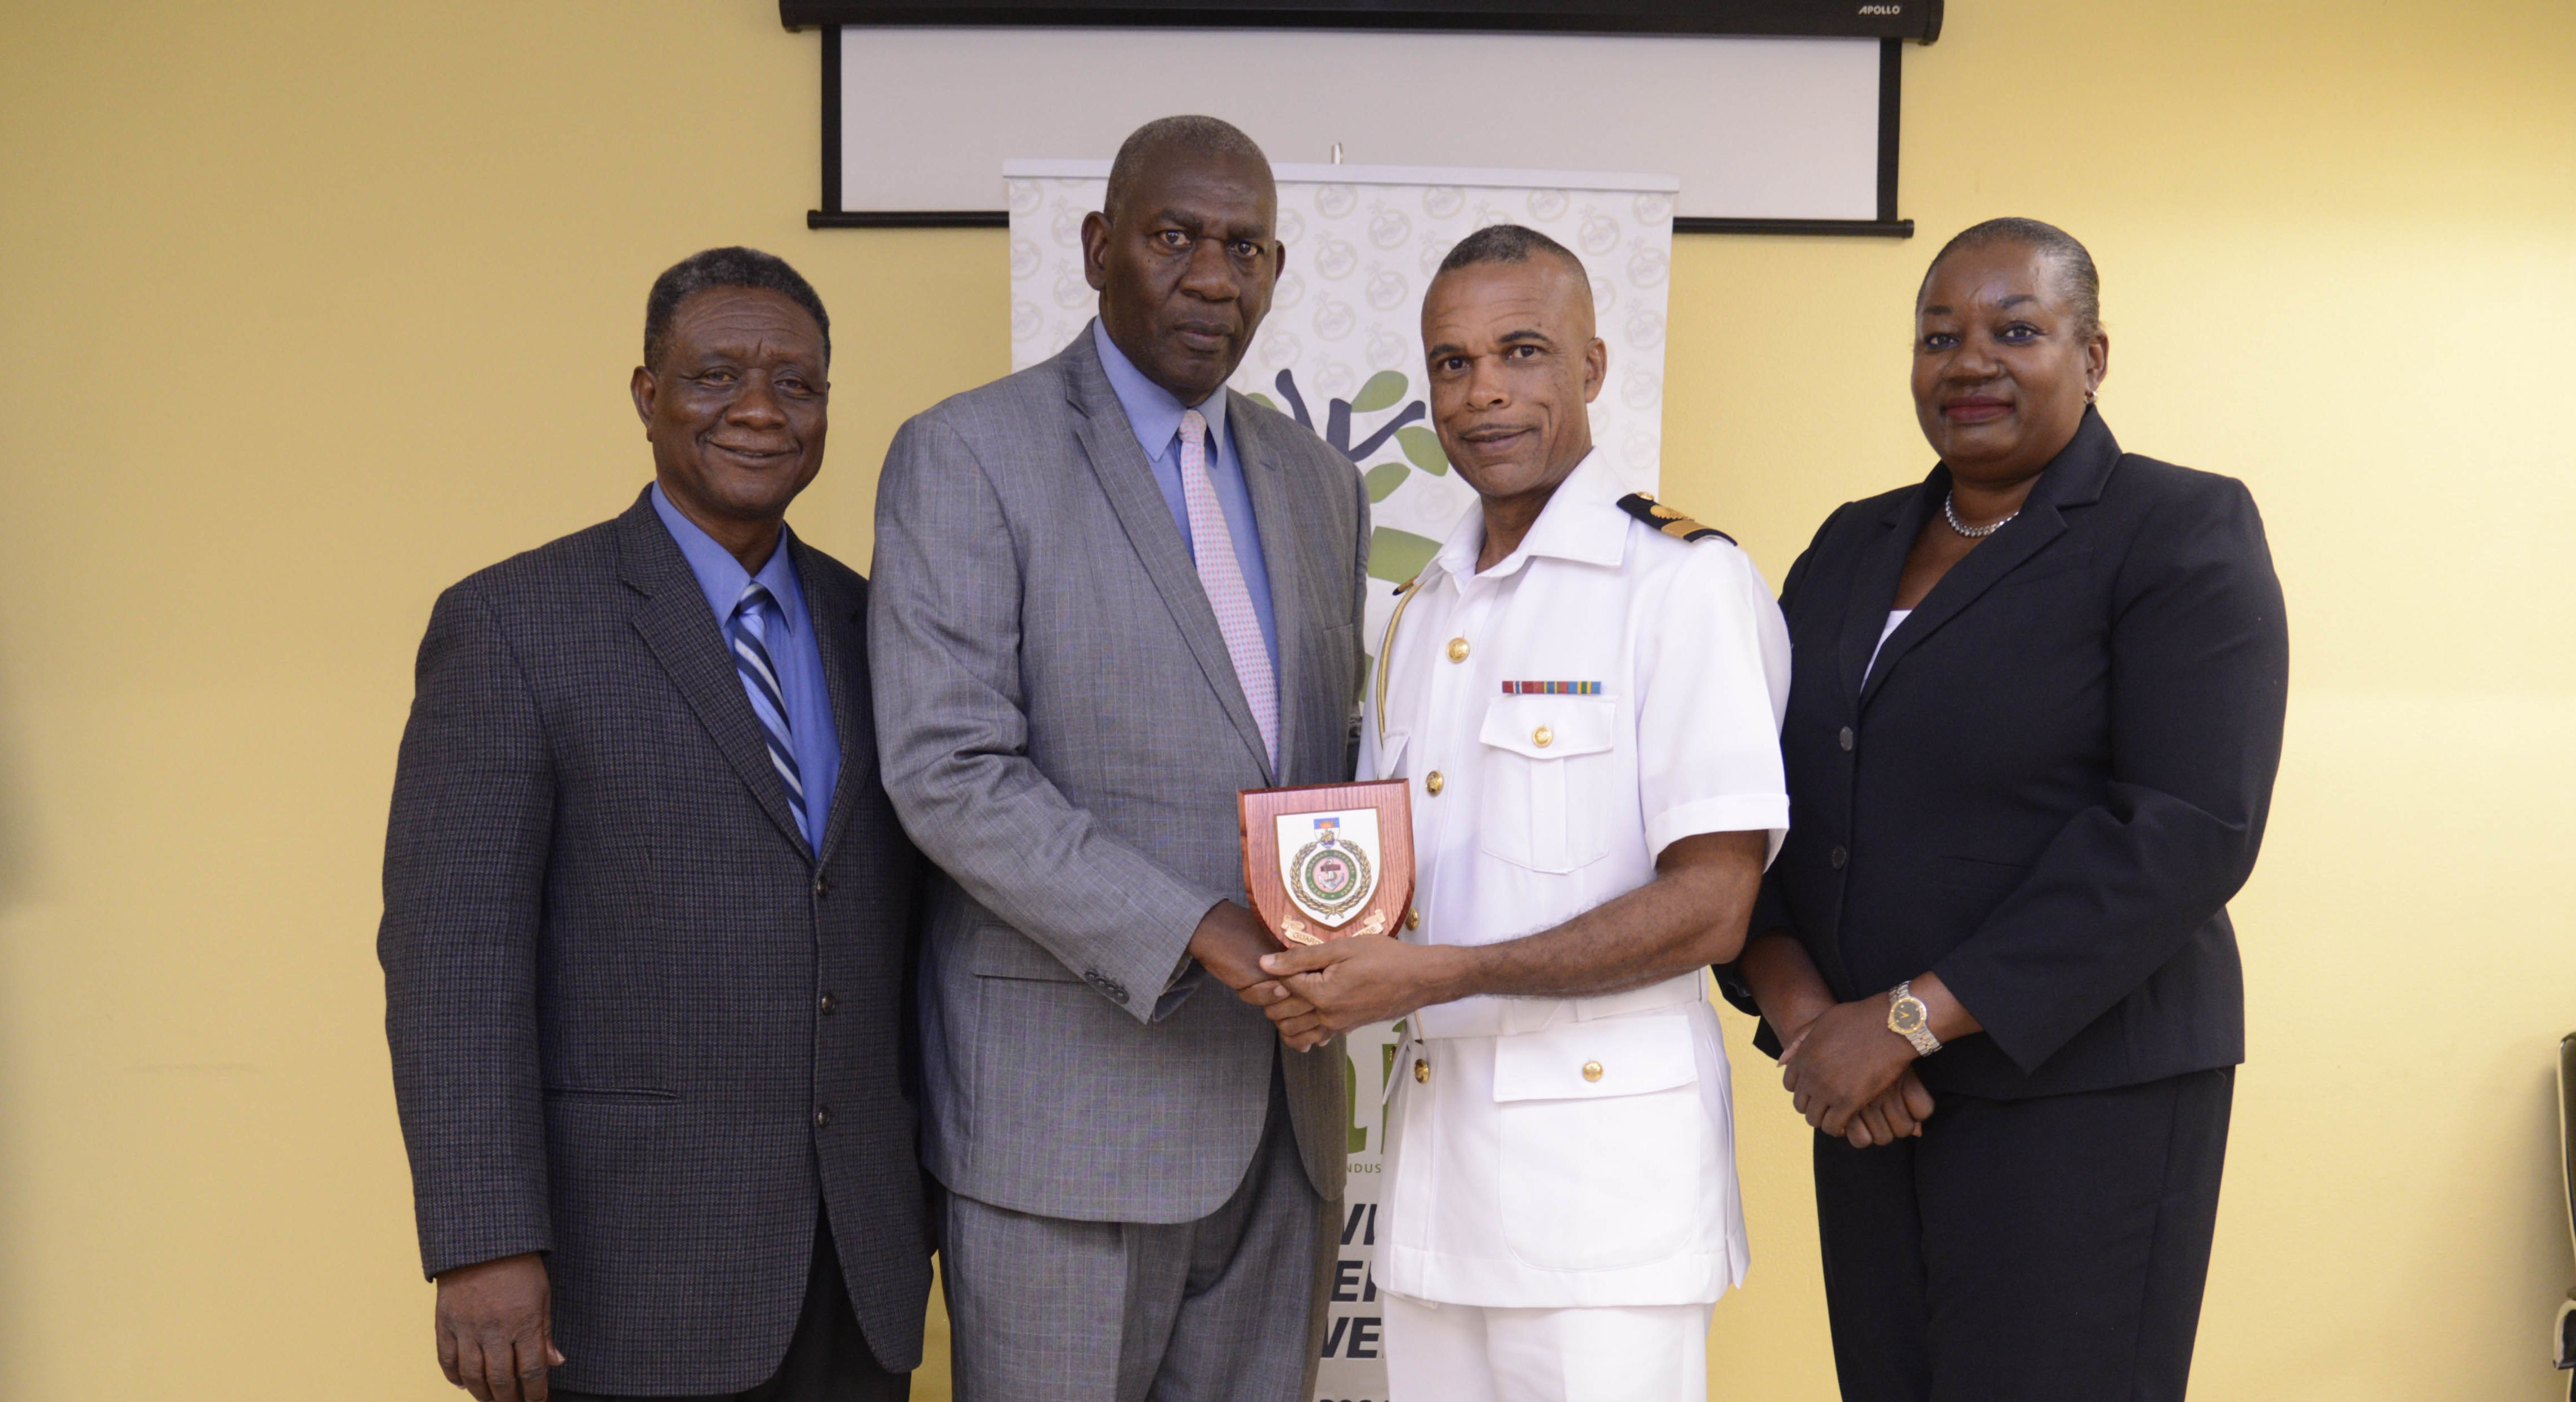 Defence Force personnel complete business development program at BAIC